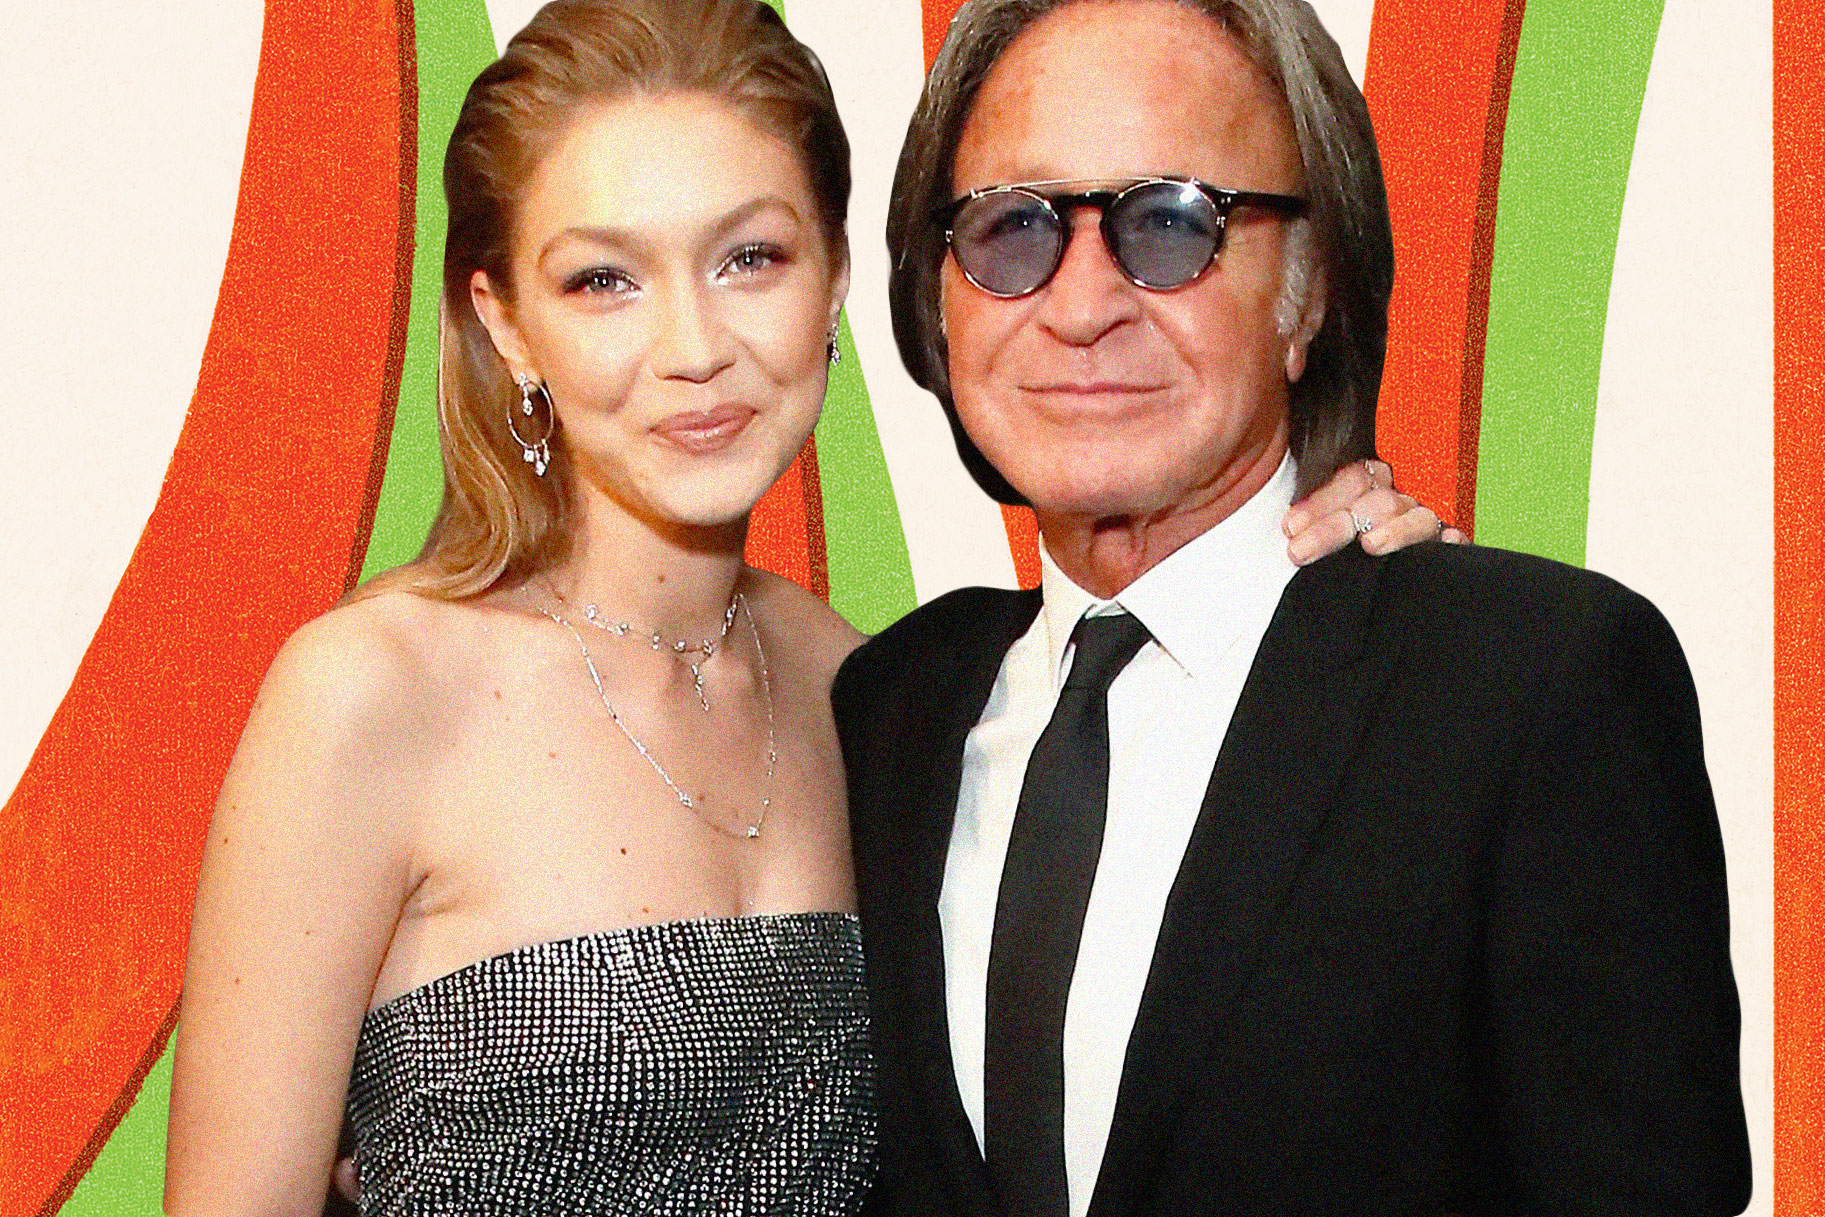 mohamid-hadid-brunch-promote.jpg